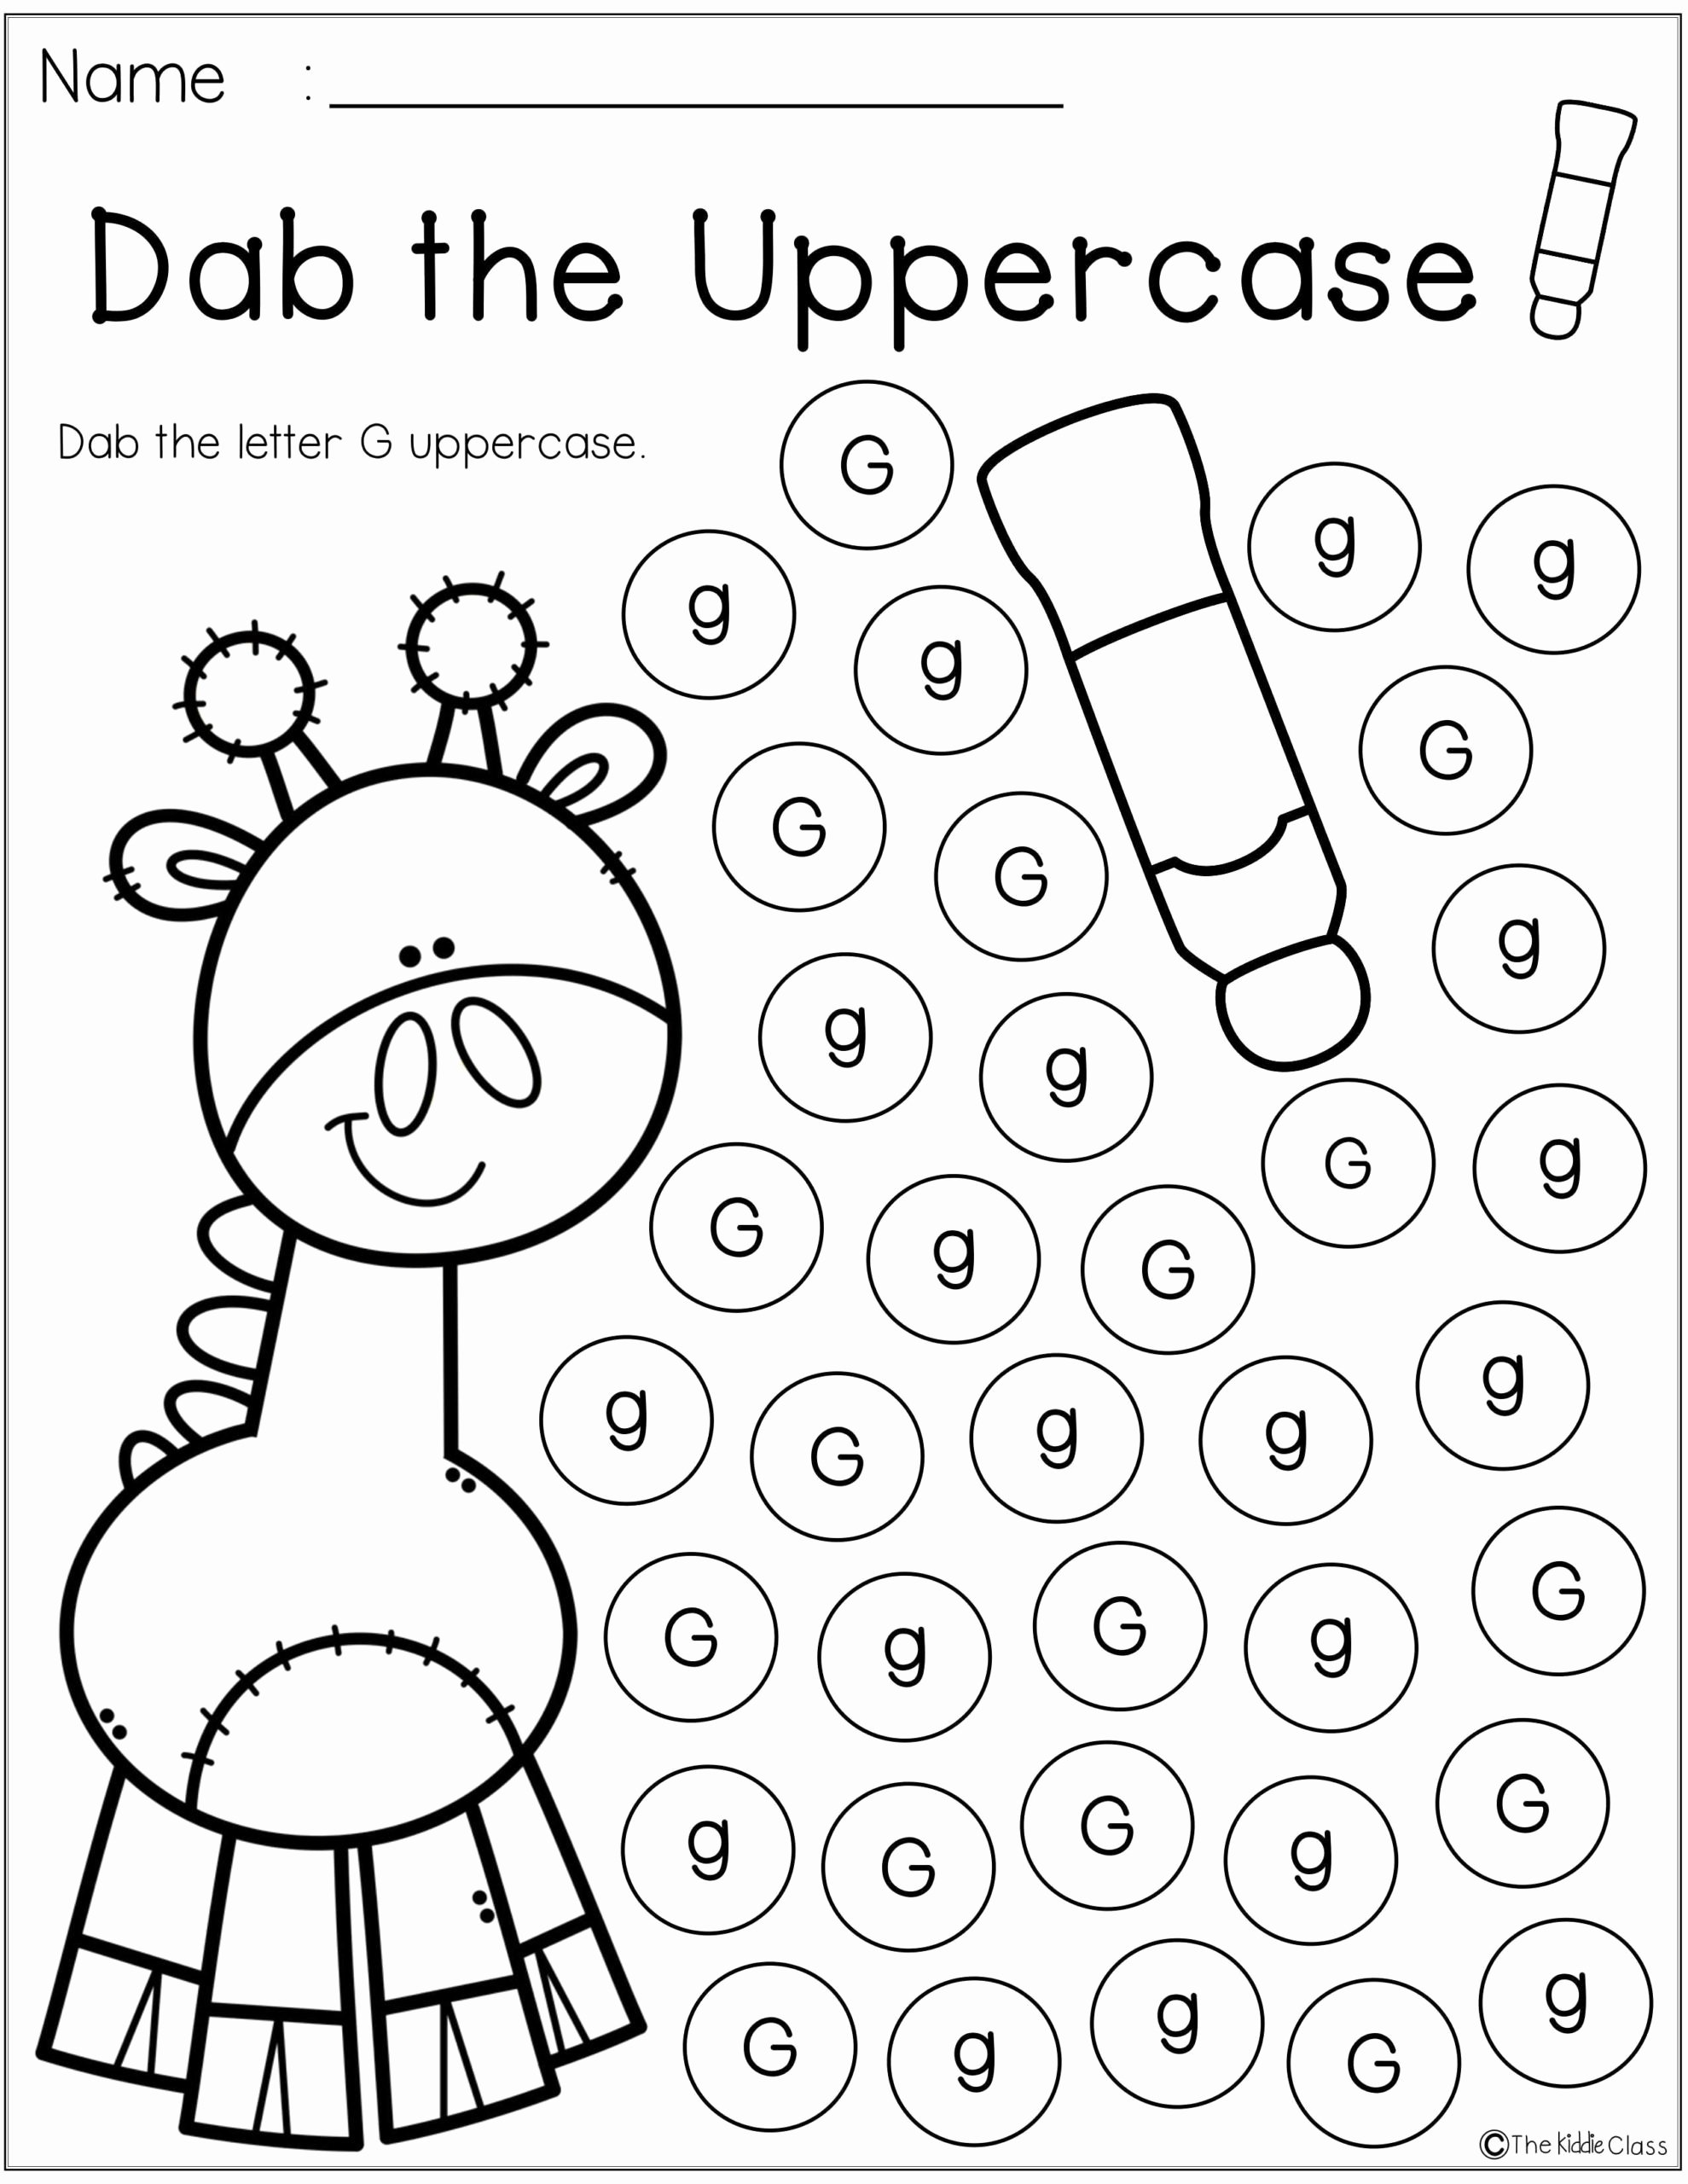 Speech therapy Worksheets for Preschoolers Lovely Worksheet Printable Worksheets and Activities for Teachers